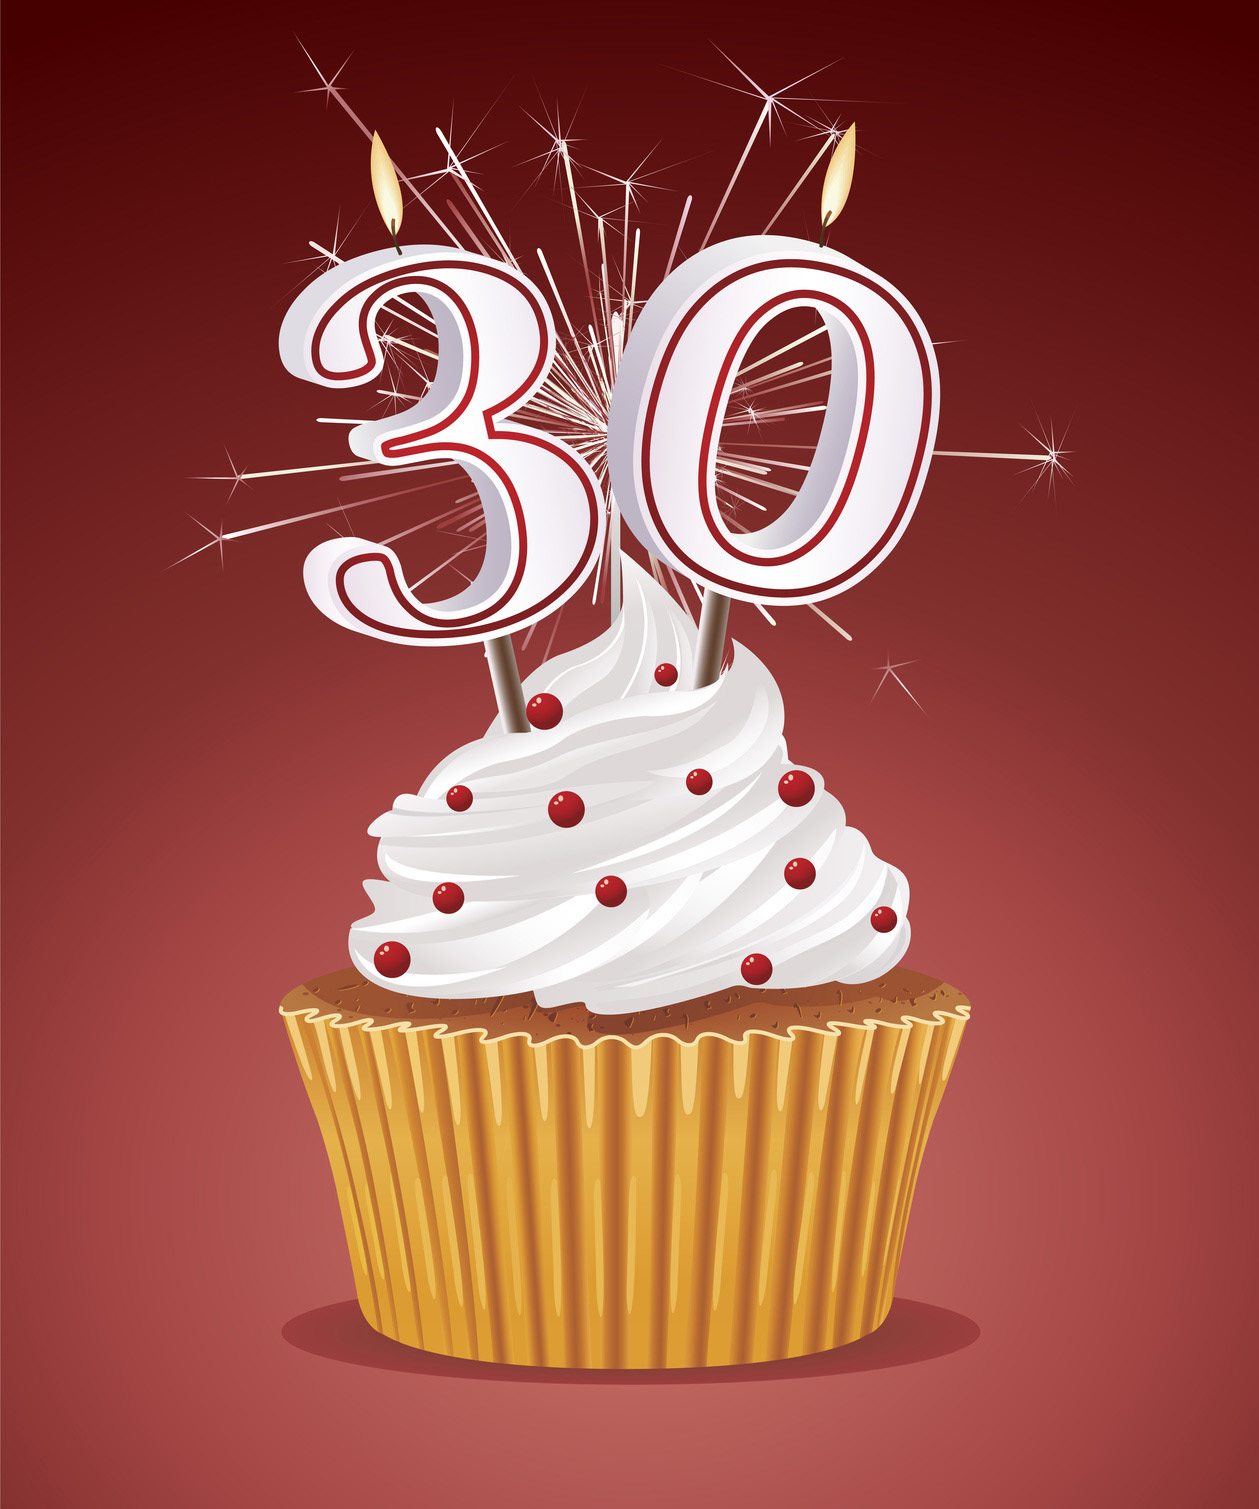 Press Release - 30 Year Celebrations For Huntingdon Recruitment Agency